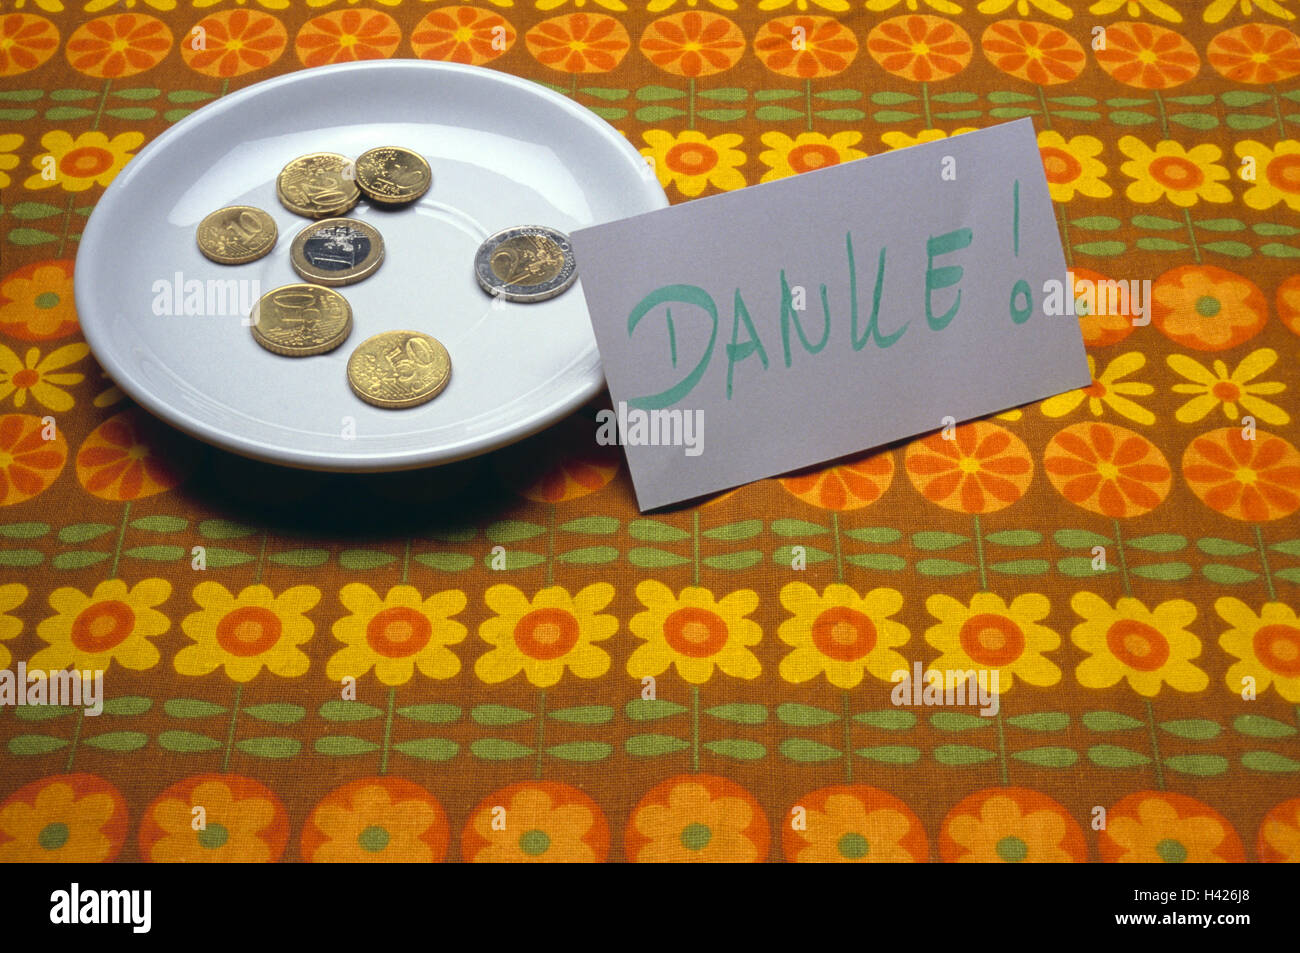 Plates, coins, tip, sign, stroke, thanks, , toilet, publicly, men's room, ladies' room, euro, euro coins, - Stock Image